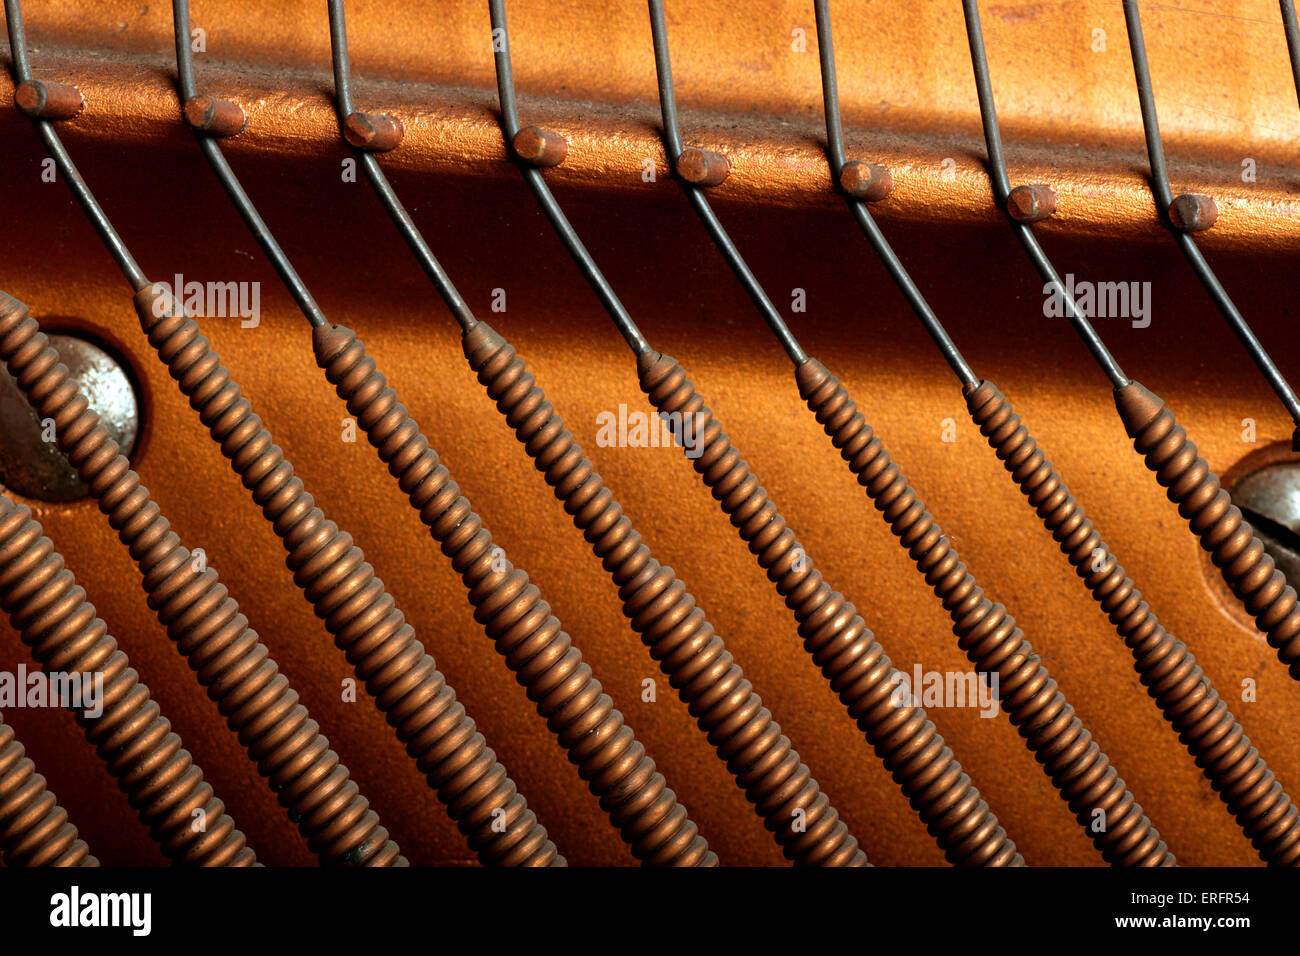 Bass strings from an upright piano - Close-up detail Stock Photo